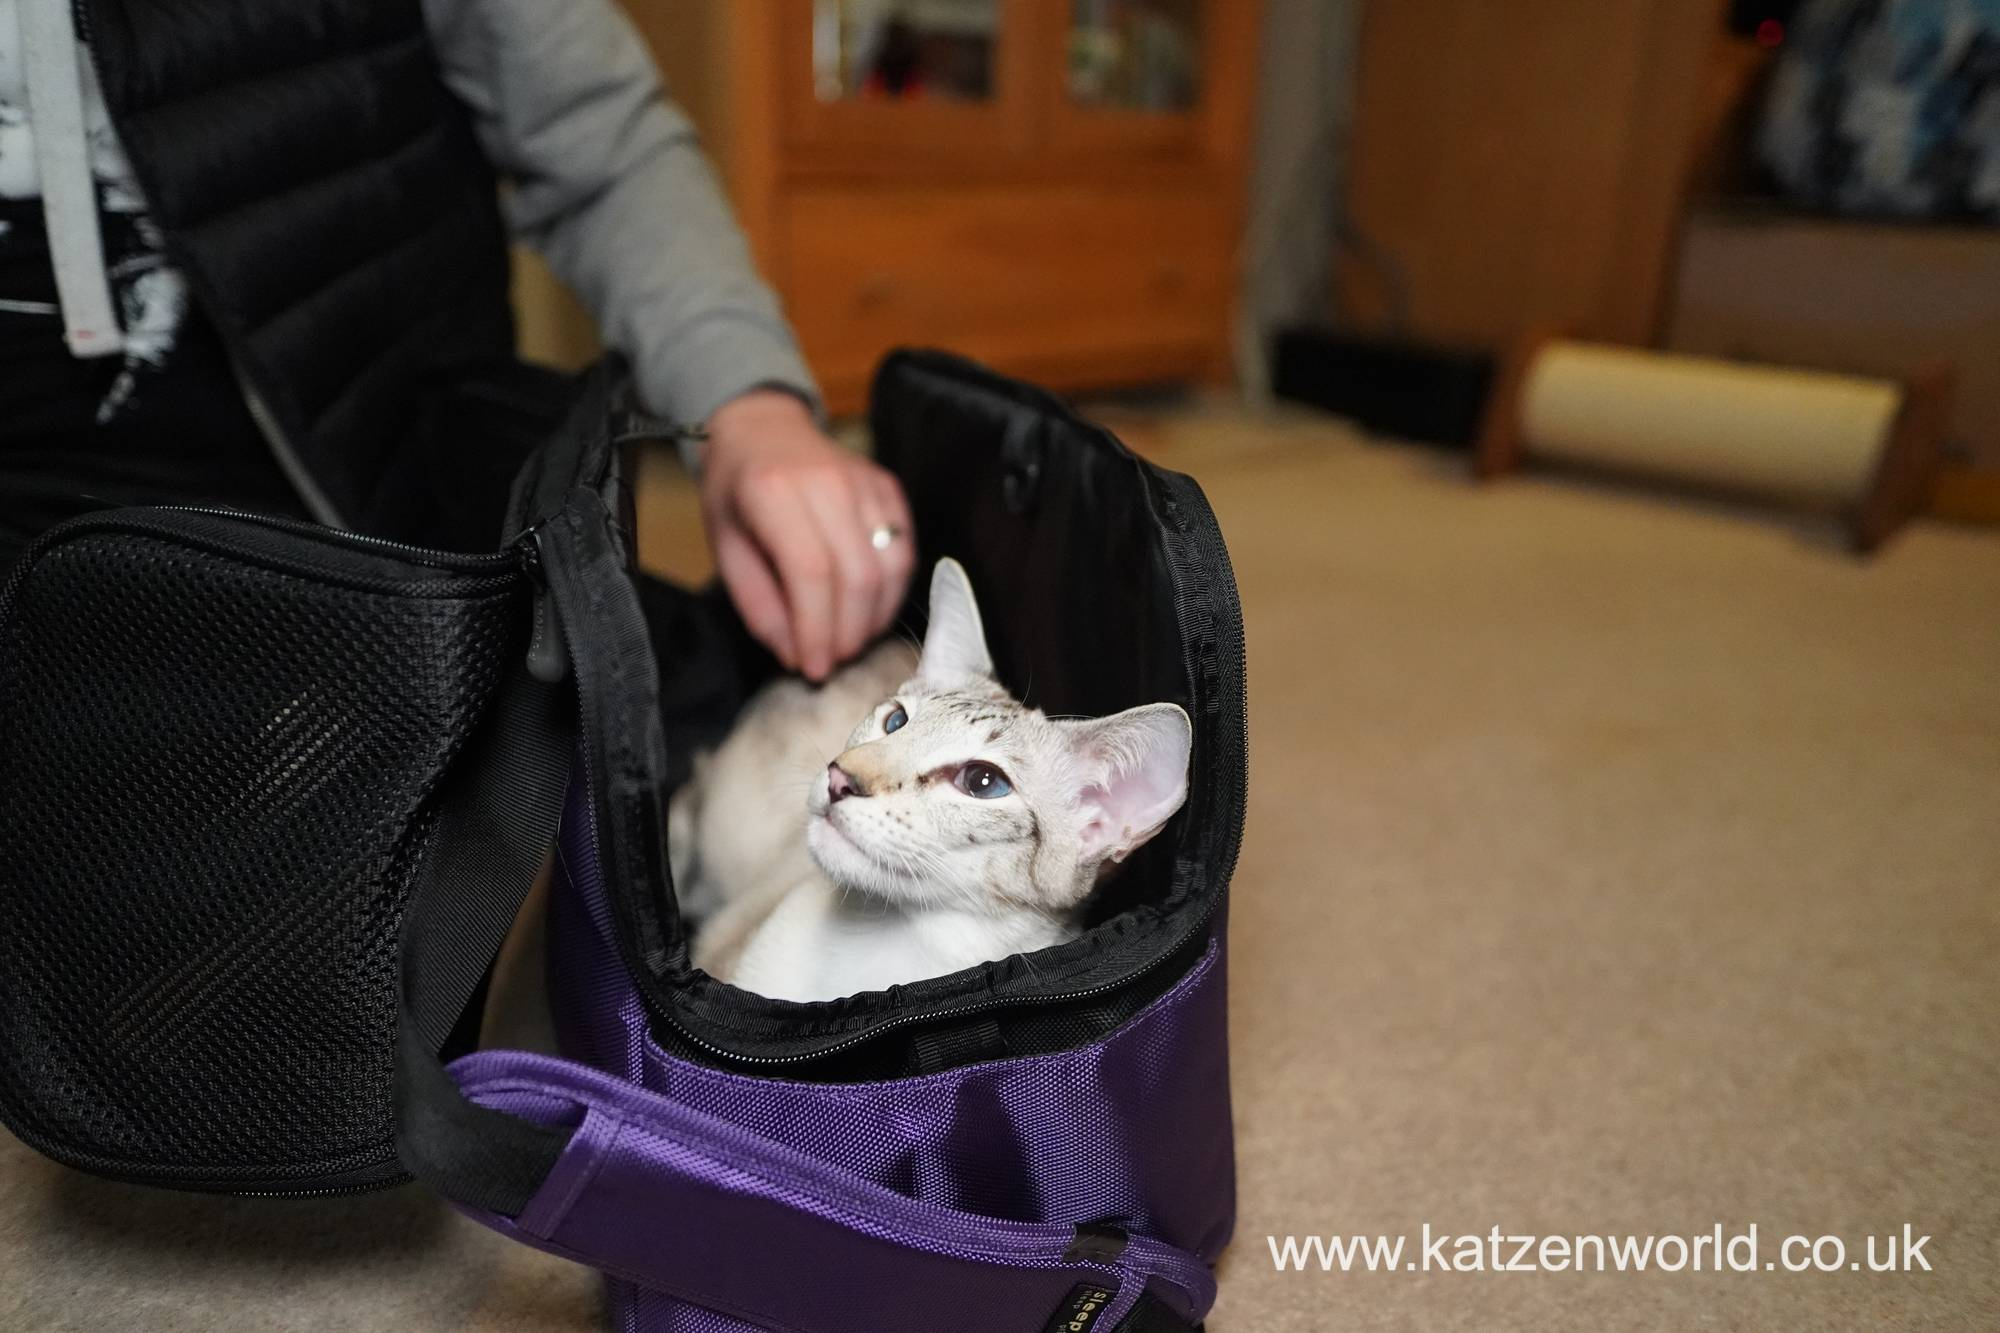 Freya: A Cosey Carrier worthy of a Queen!